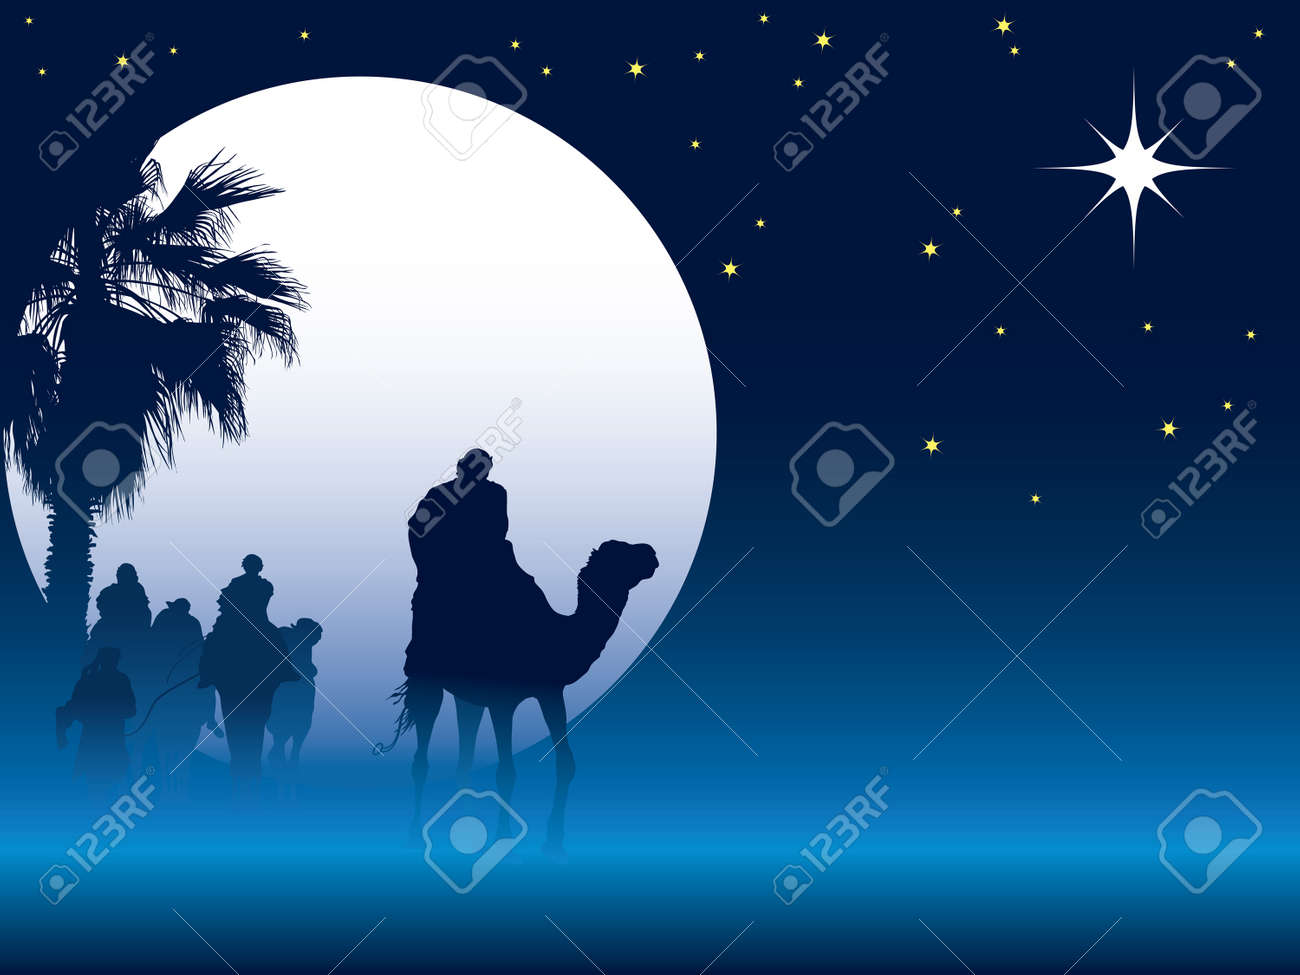 Nativity scene with wise men on camels going through the desert Stock Vector - 5909779